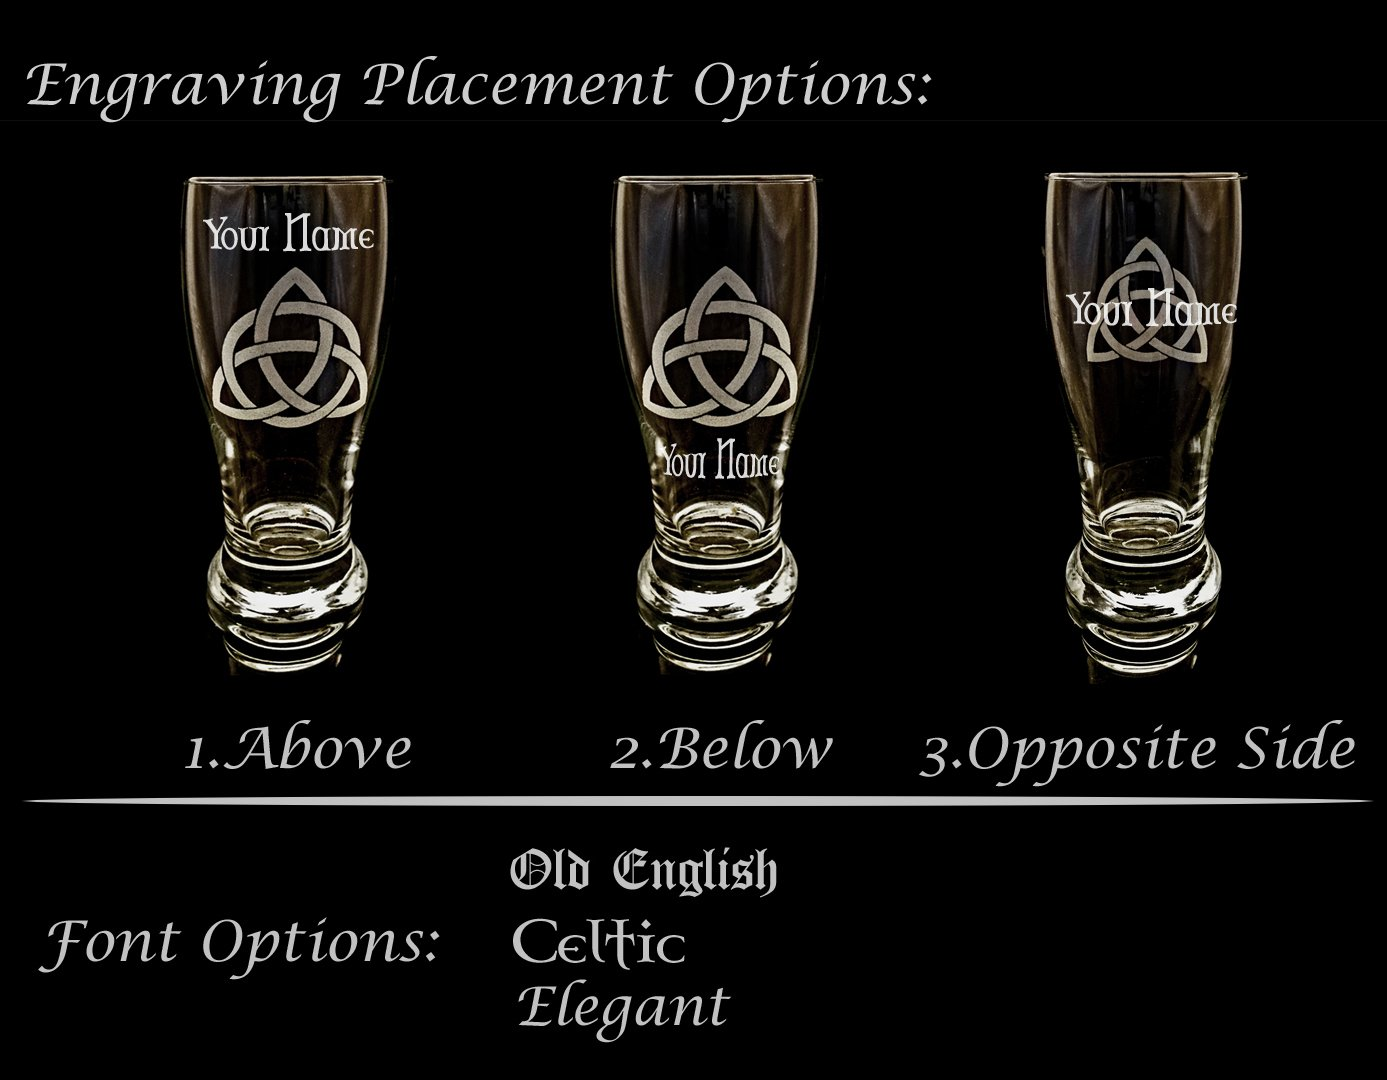 Clan Murray Scottish Crest Pint Glass Set of 4 - Free Personalized Engraving, Family Crest, Pub Glass, Beer Glass, Custom Beer Glass by LyonCraft (Image #3)